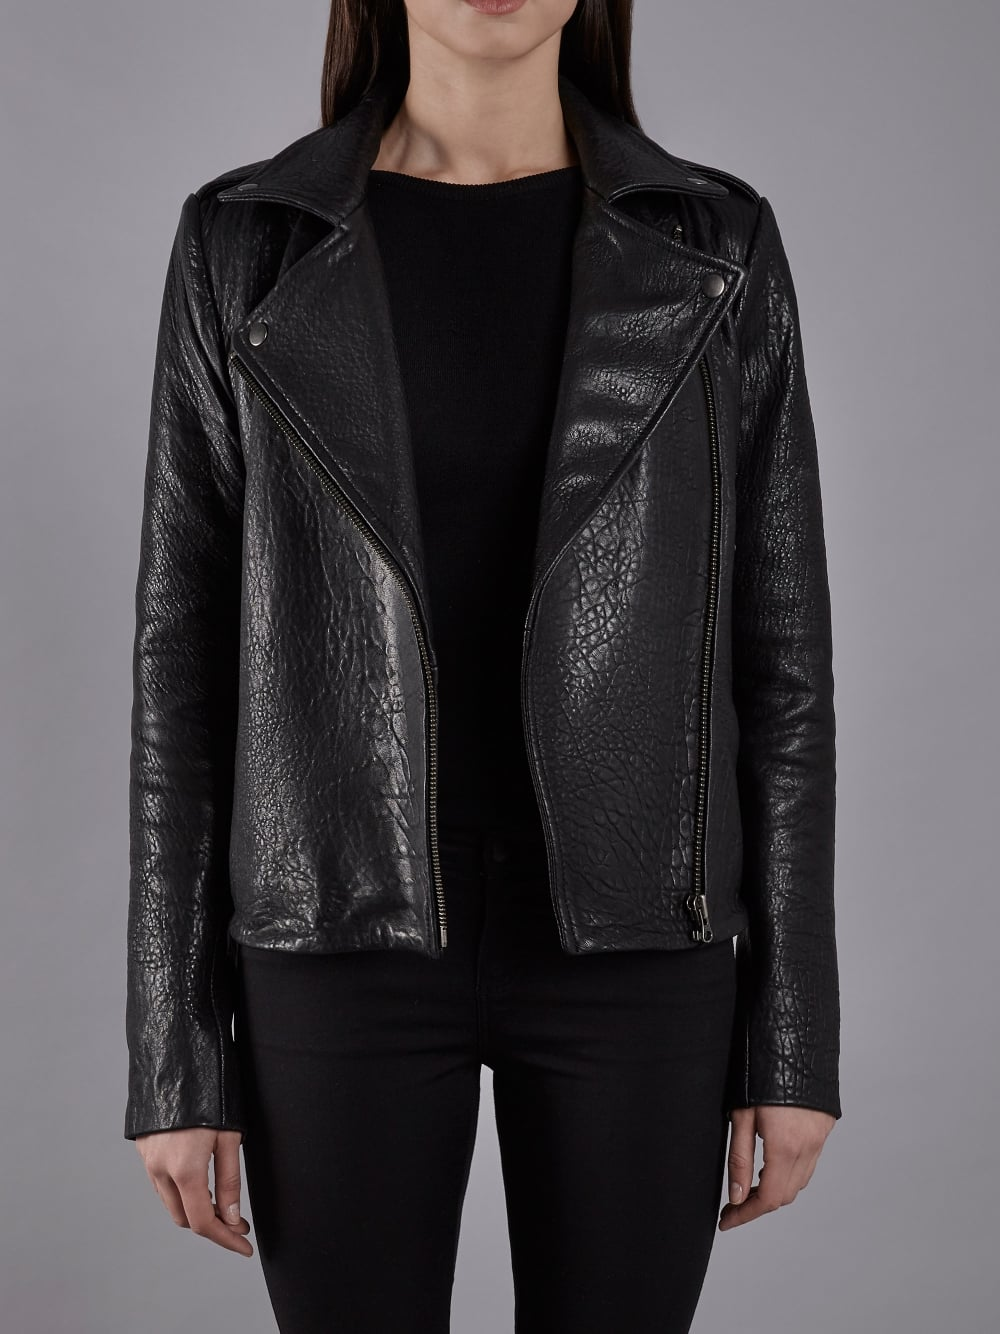 0e3edc642 Muubaa Healey Black Bubble Leather Biker Jacket